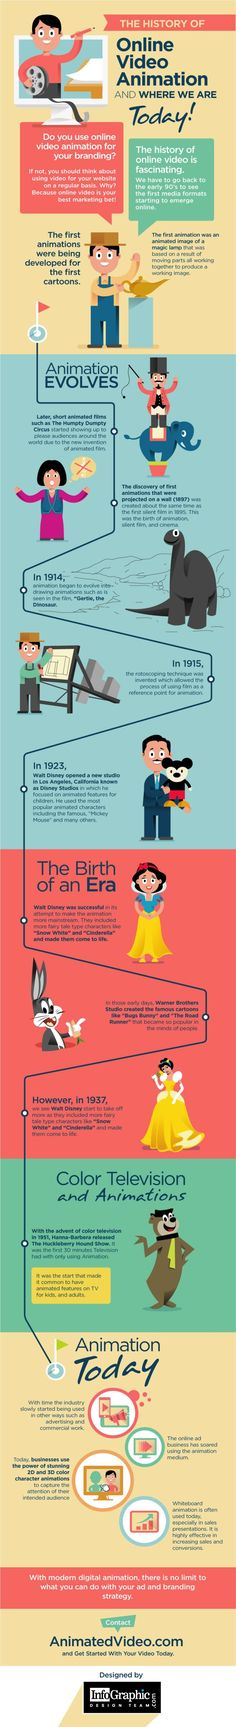 The History of Online Video - #infographic